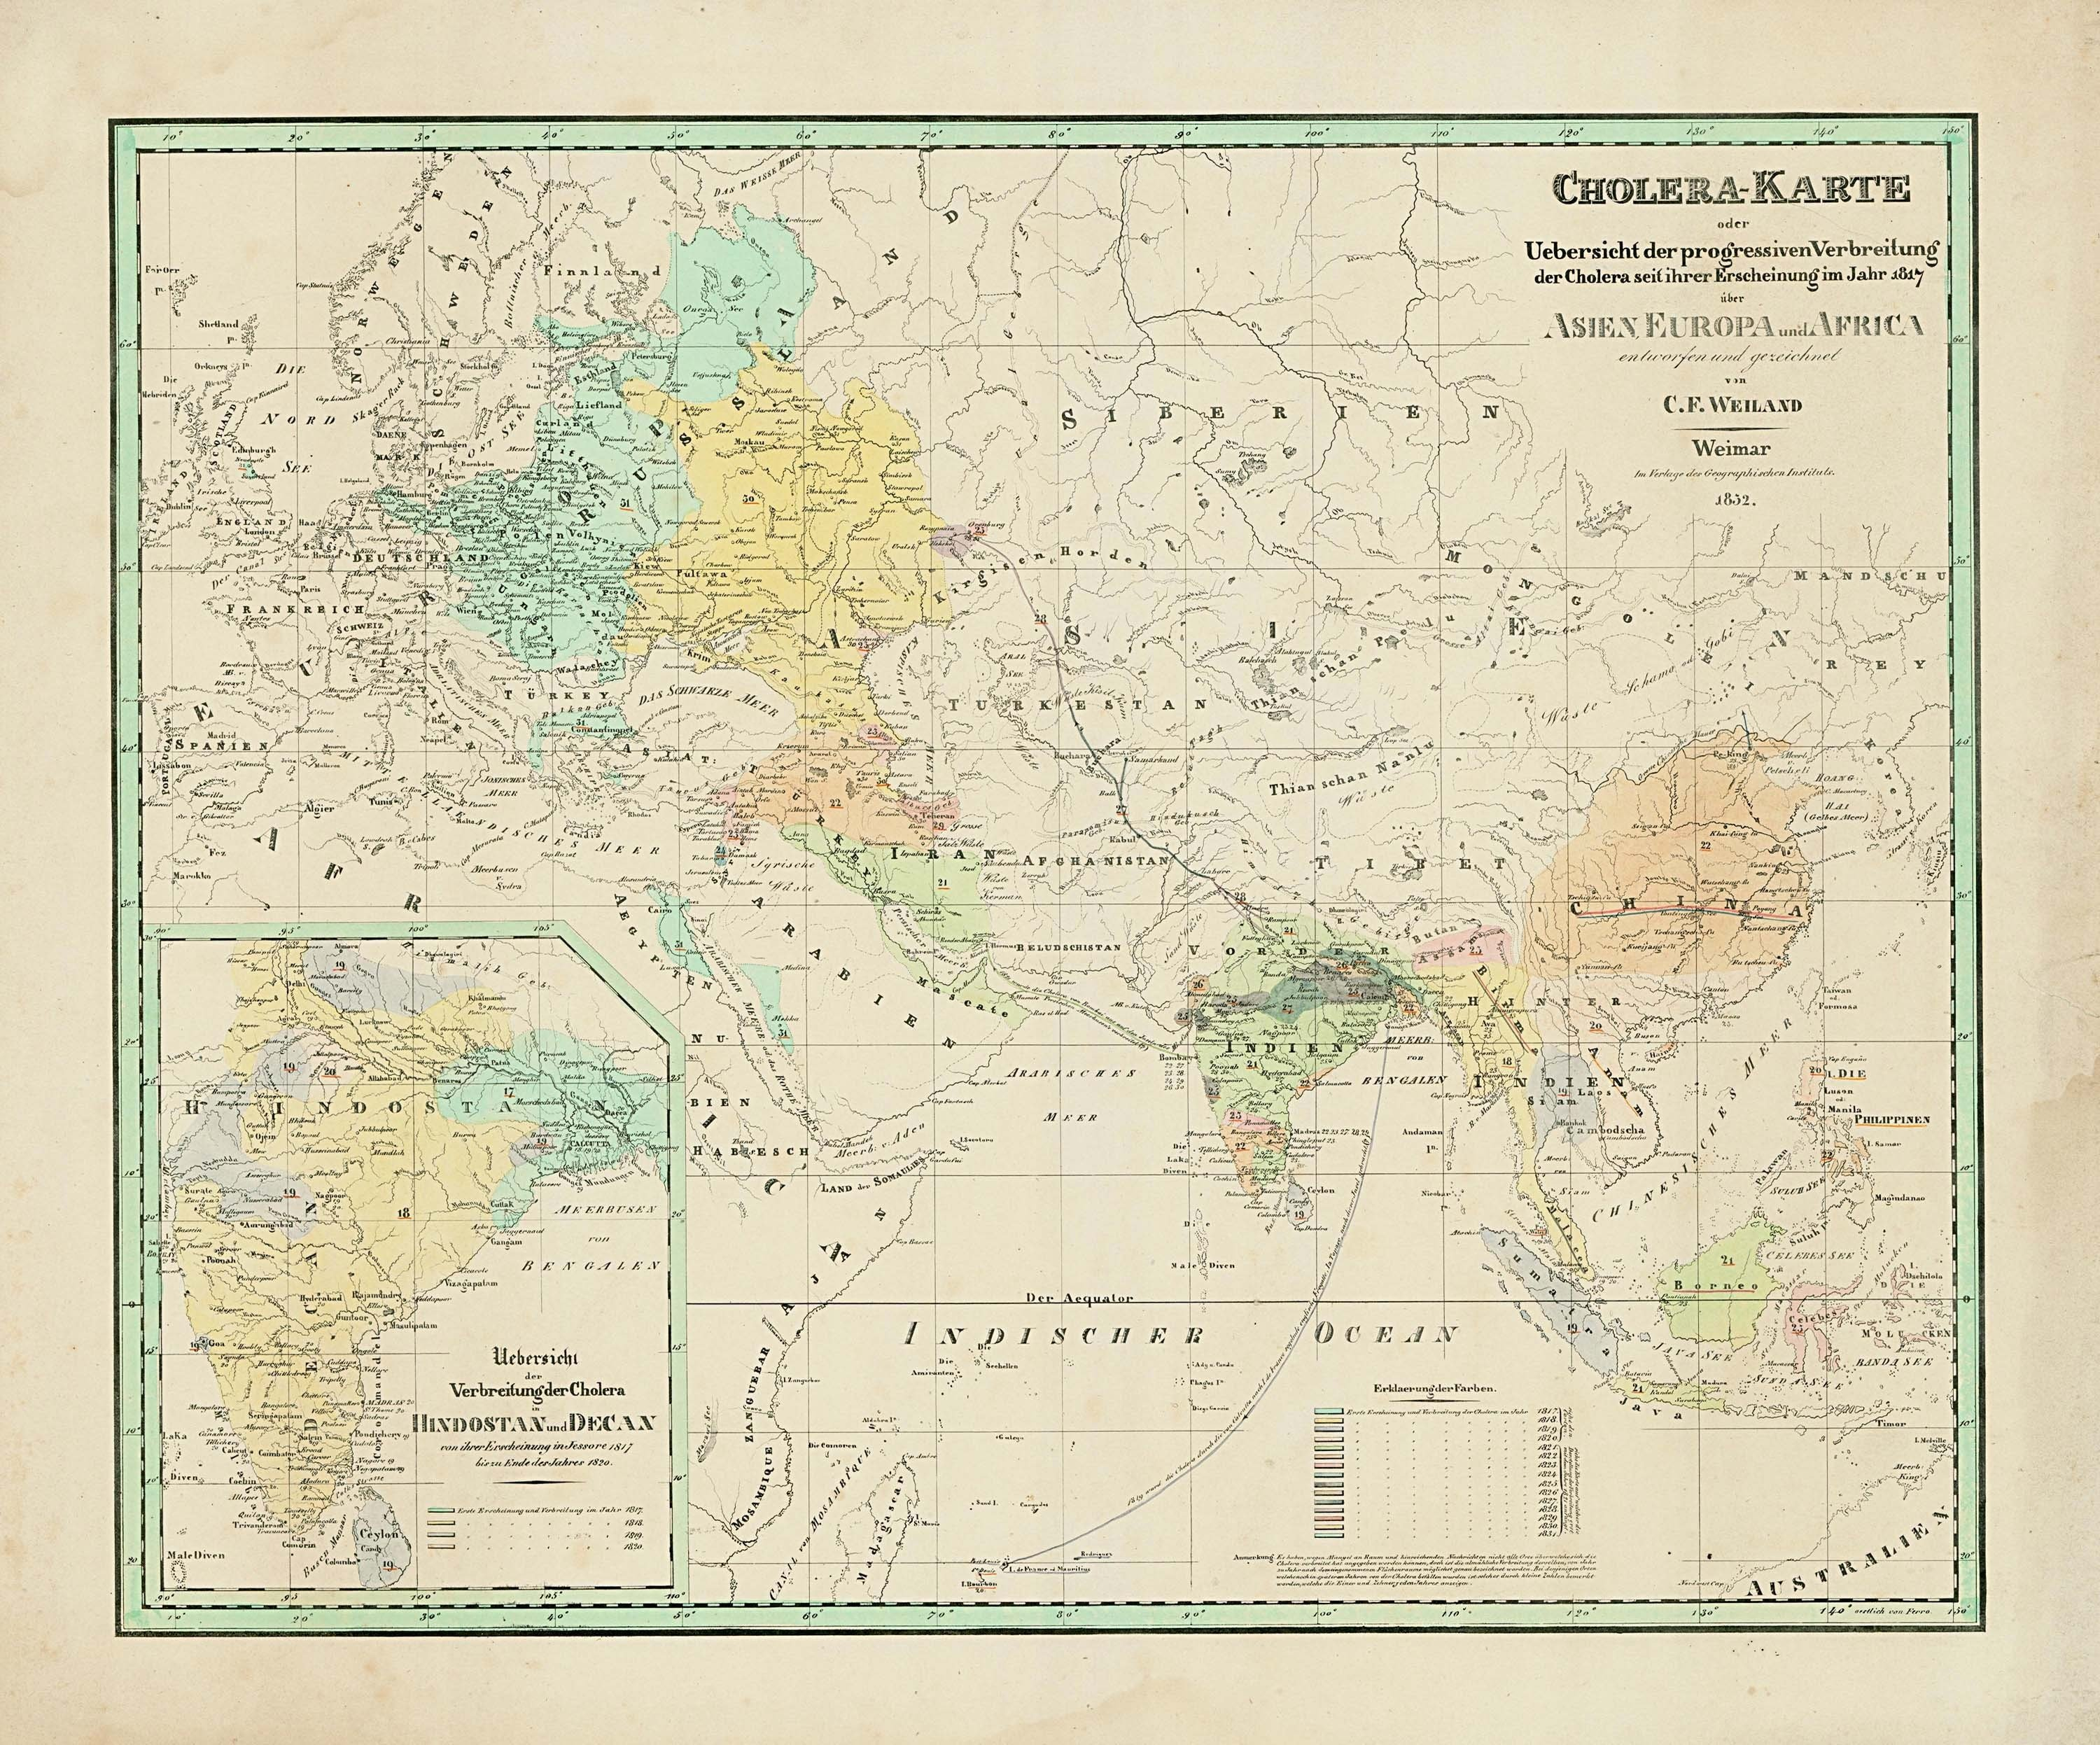 Rare cholera map of the first and second Pandemics - Rare